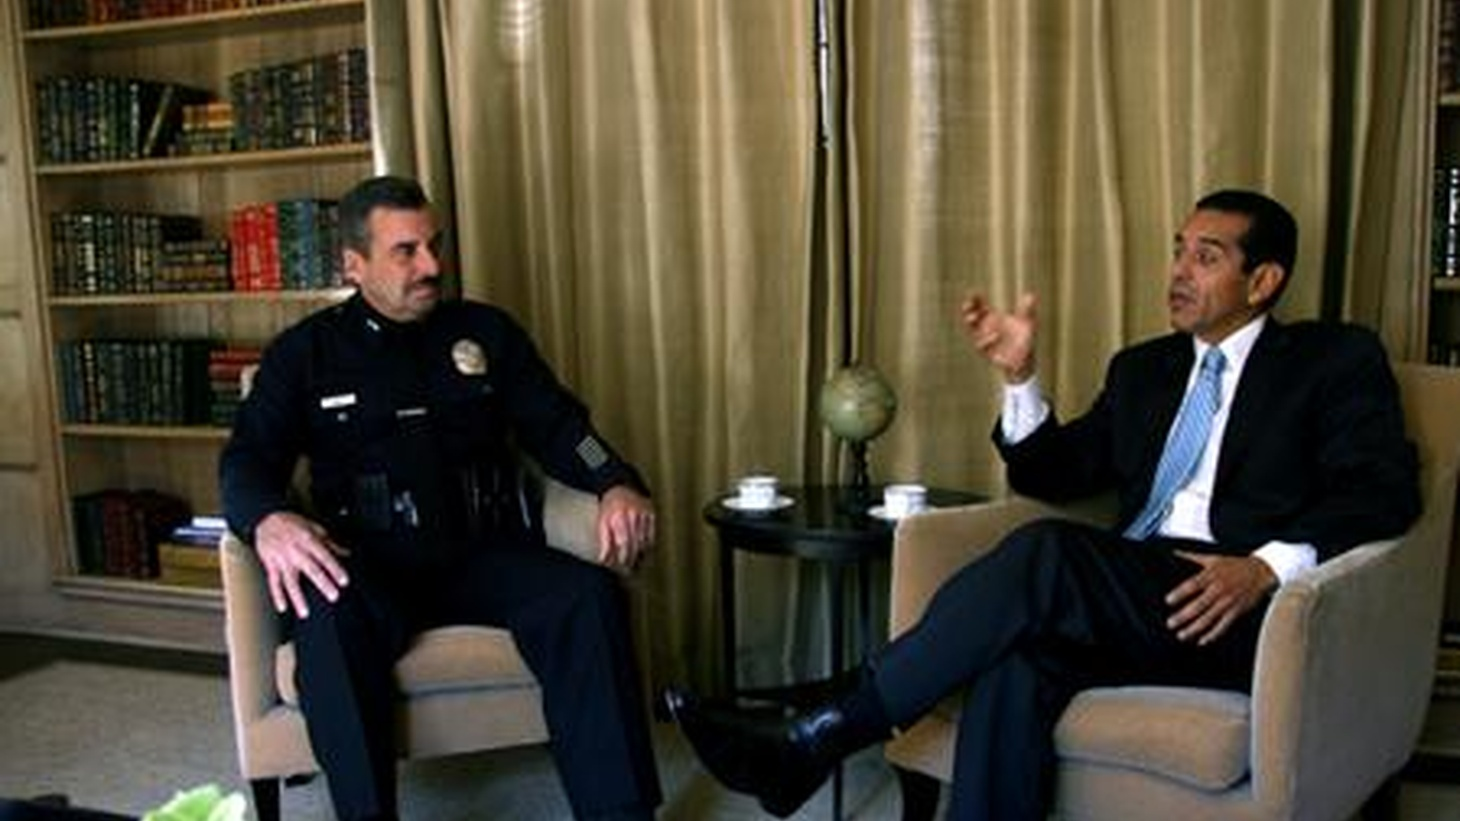 Mayor Villagraigosa has chosen Deputy Chief Charlie Beck to succeed Bill Bratton as Chief of the LAPD. We hear from both men and get reaction from a cross section of city figures. On our rebroadcast of today's To the Point, Hillary Clinton's having a tough time with Israelis and Arabs, and Congress is about to condemn a UN report on war crimes in Gaza.